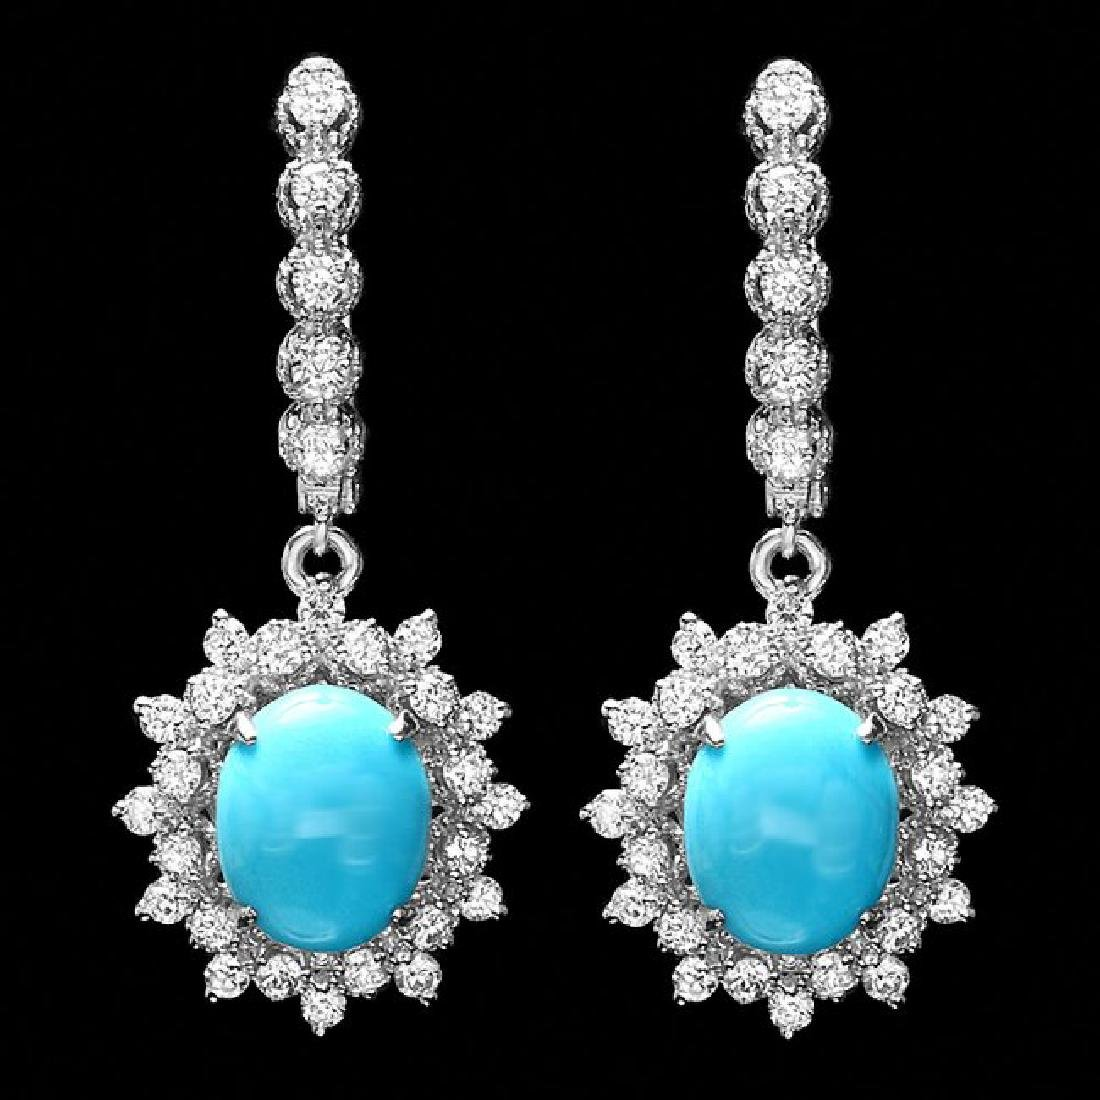 14k Gold 5ct Turquoise 1.50ct Diamond Earrings